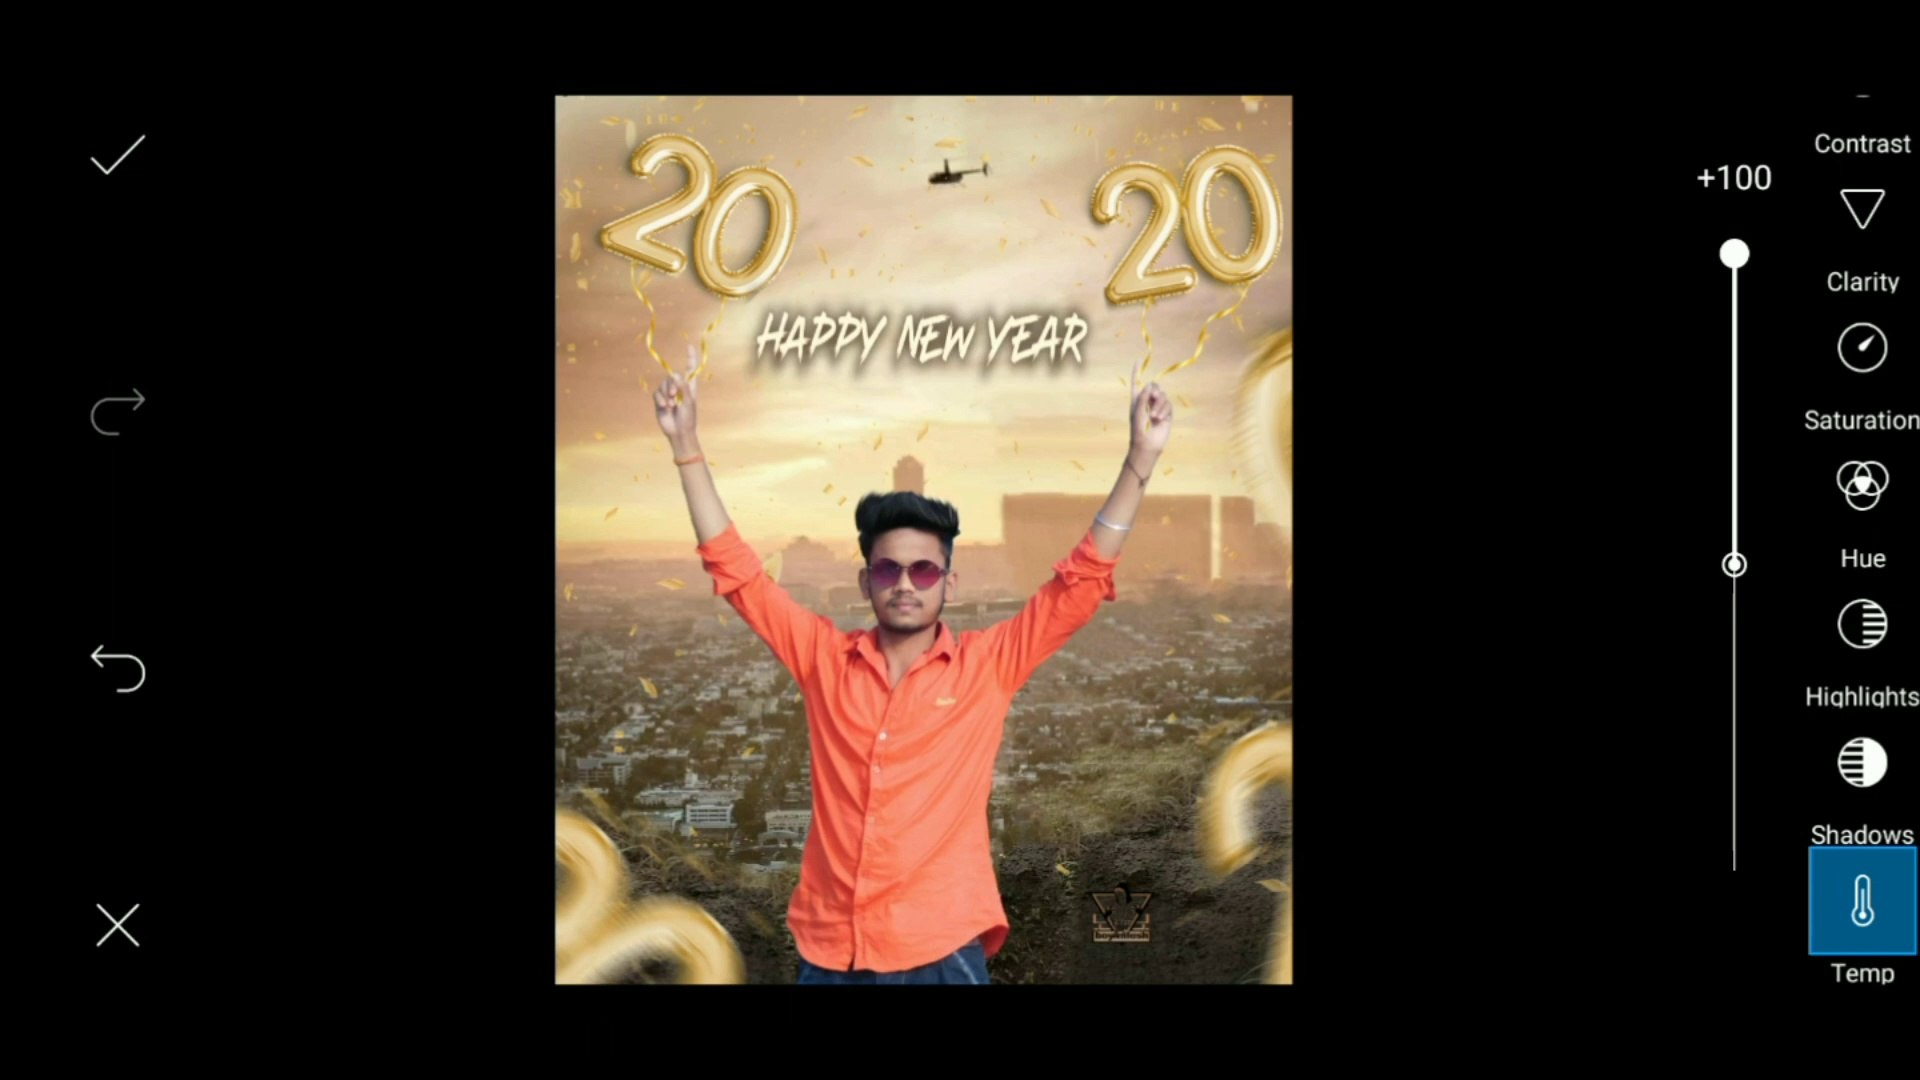 Happy new year 2020 Special photo editing in PicsArt ,2020 creative new year photo editing #Editorbo